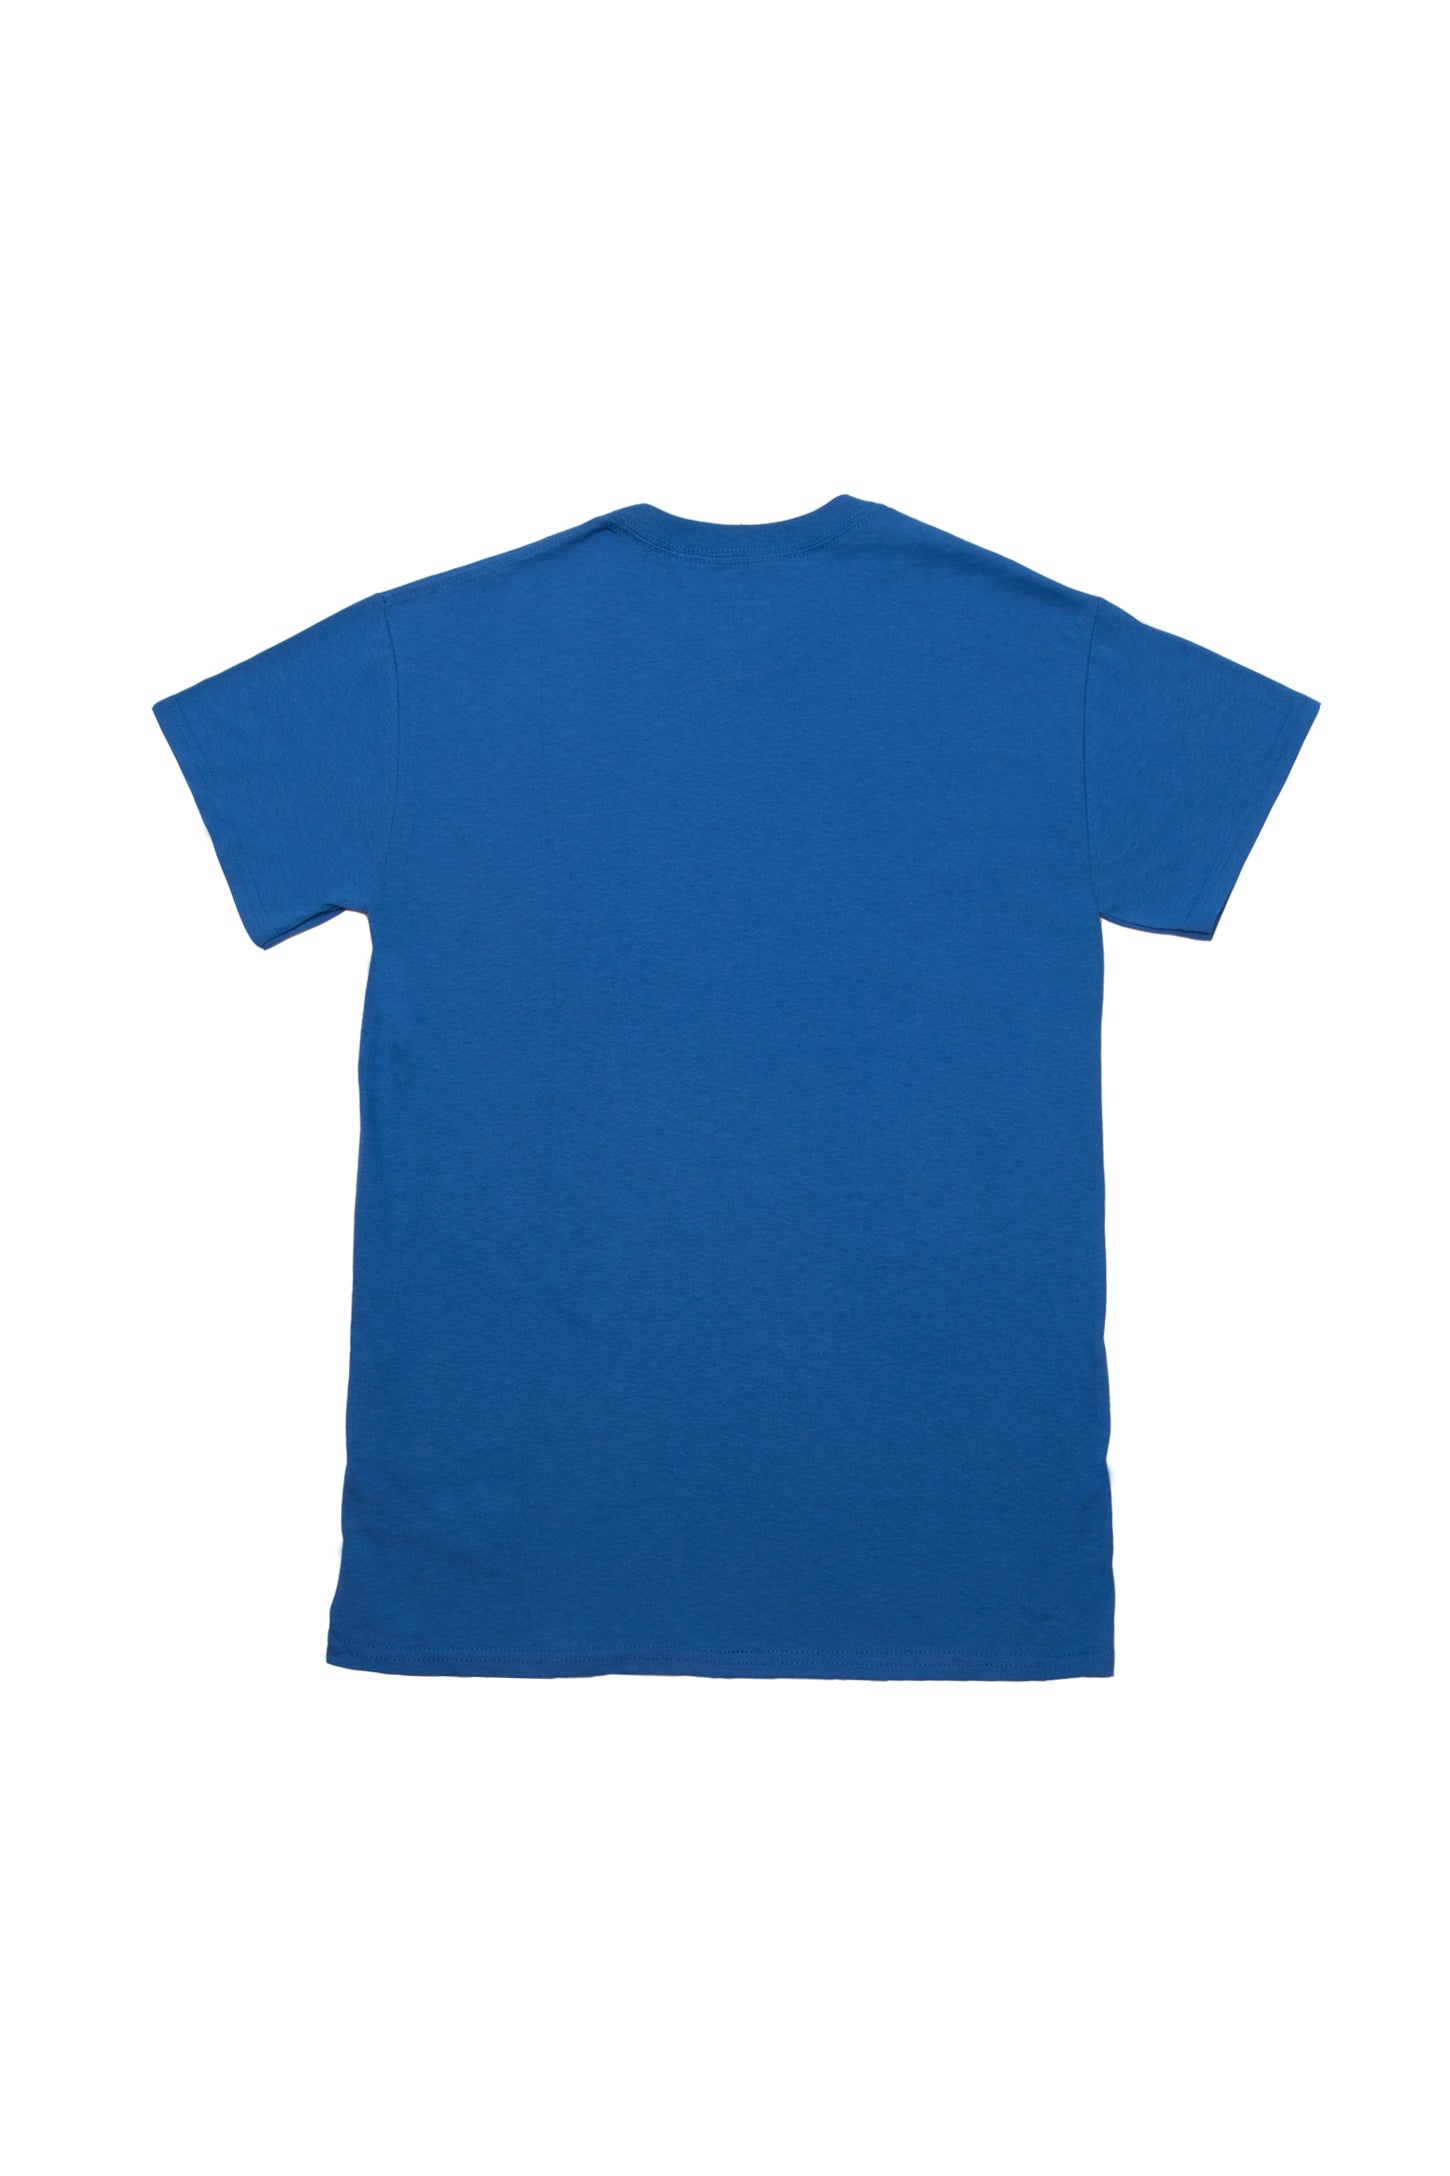 RUN DMC TEE - BLUE